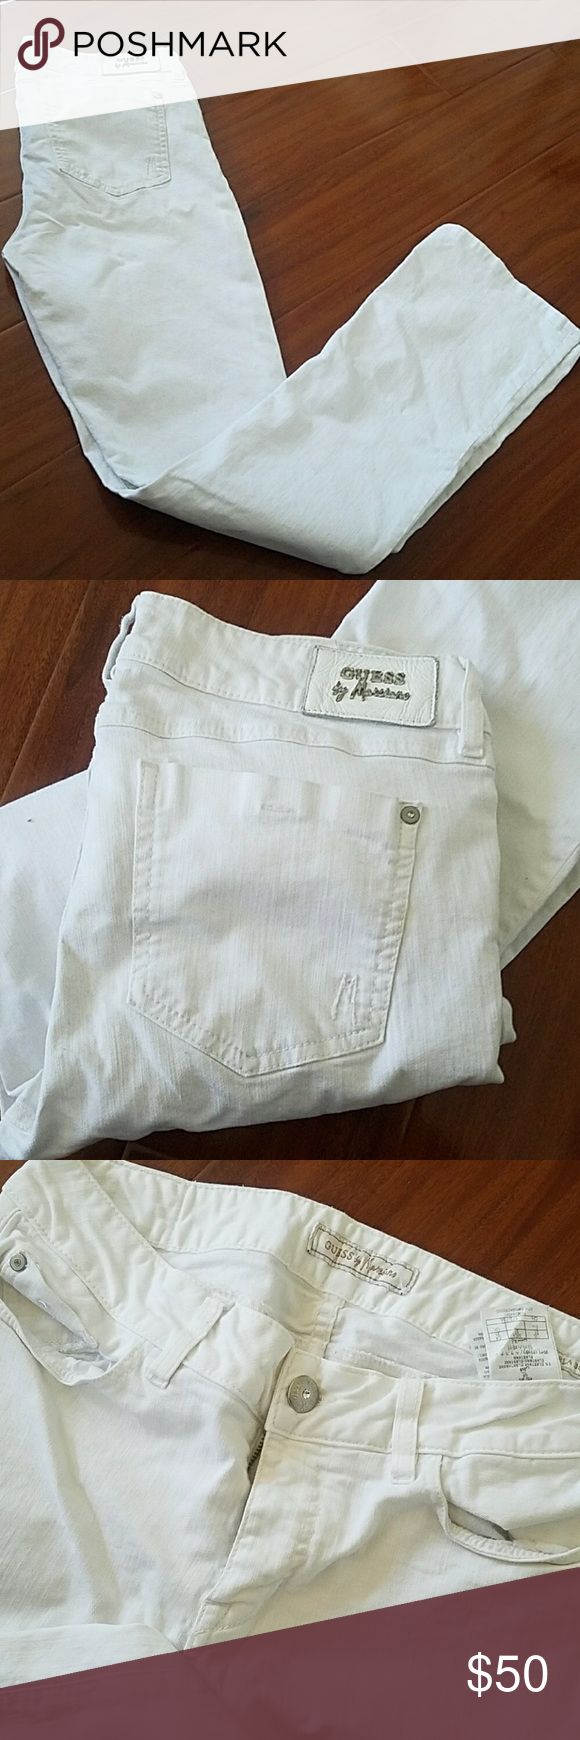 Guess Marciano Karla size 31 Guess by Marciano Karla Bootcut jeans size 31x33 very minor stain below pocket Guess by Marciano Jeans Boot Cut